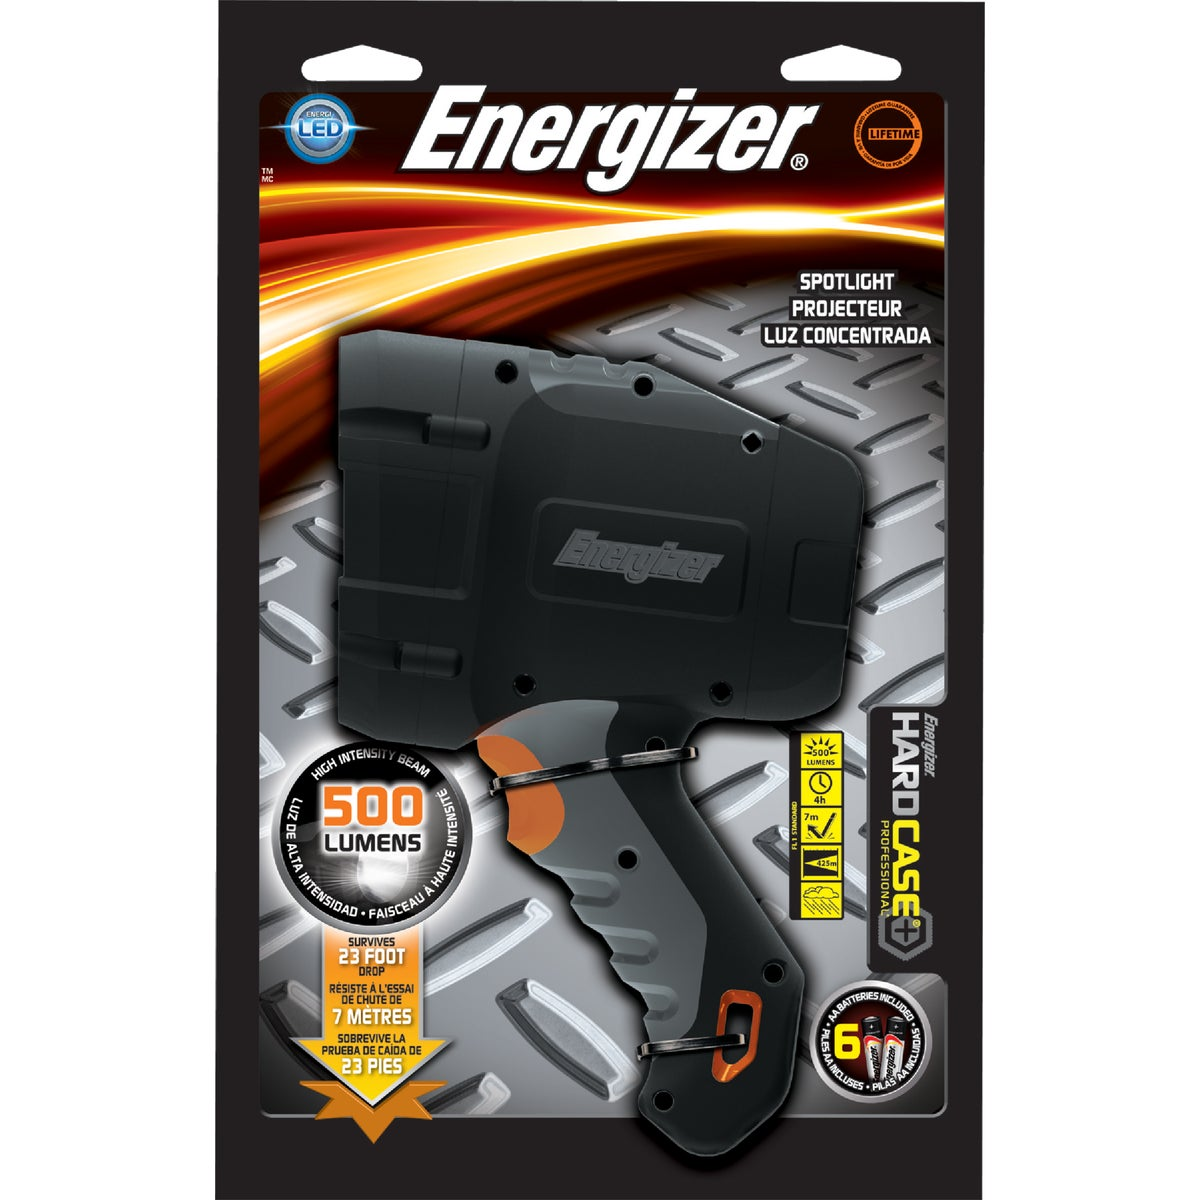 4C HARD CASE SPOTLIGHT - TUF4CPE by Energizer